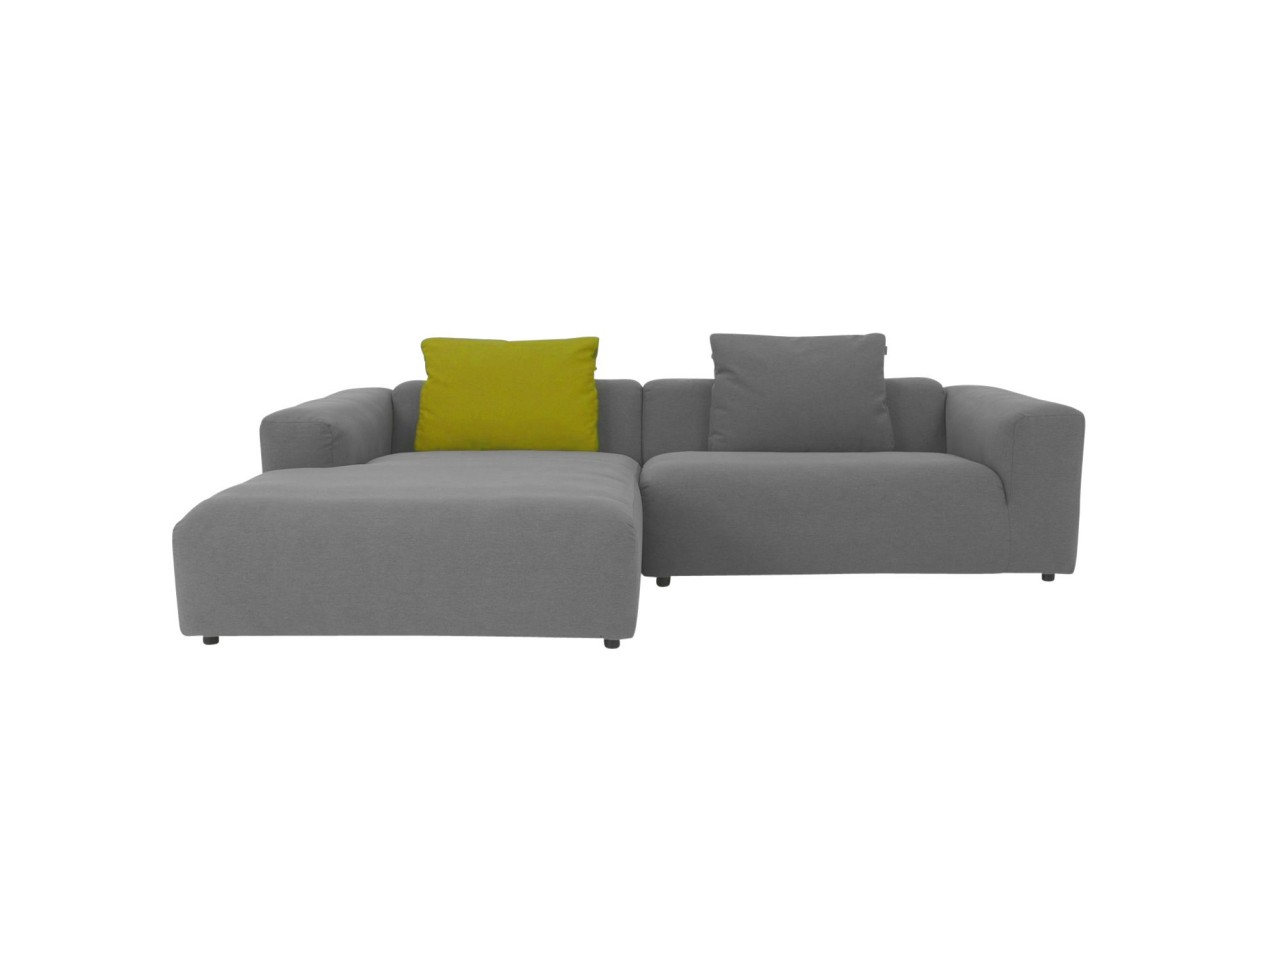 freistil 187 ROLF BENZ das absolute Lounge Sofa in grauem feinen Stoffbezug mit Longchair links